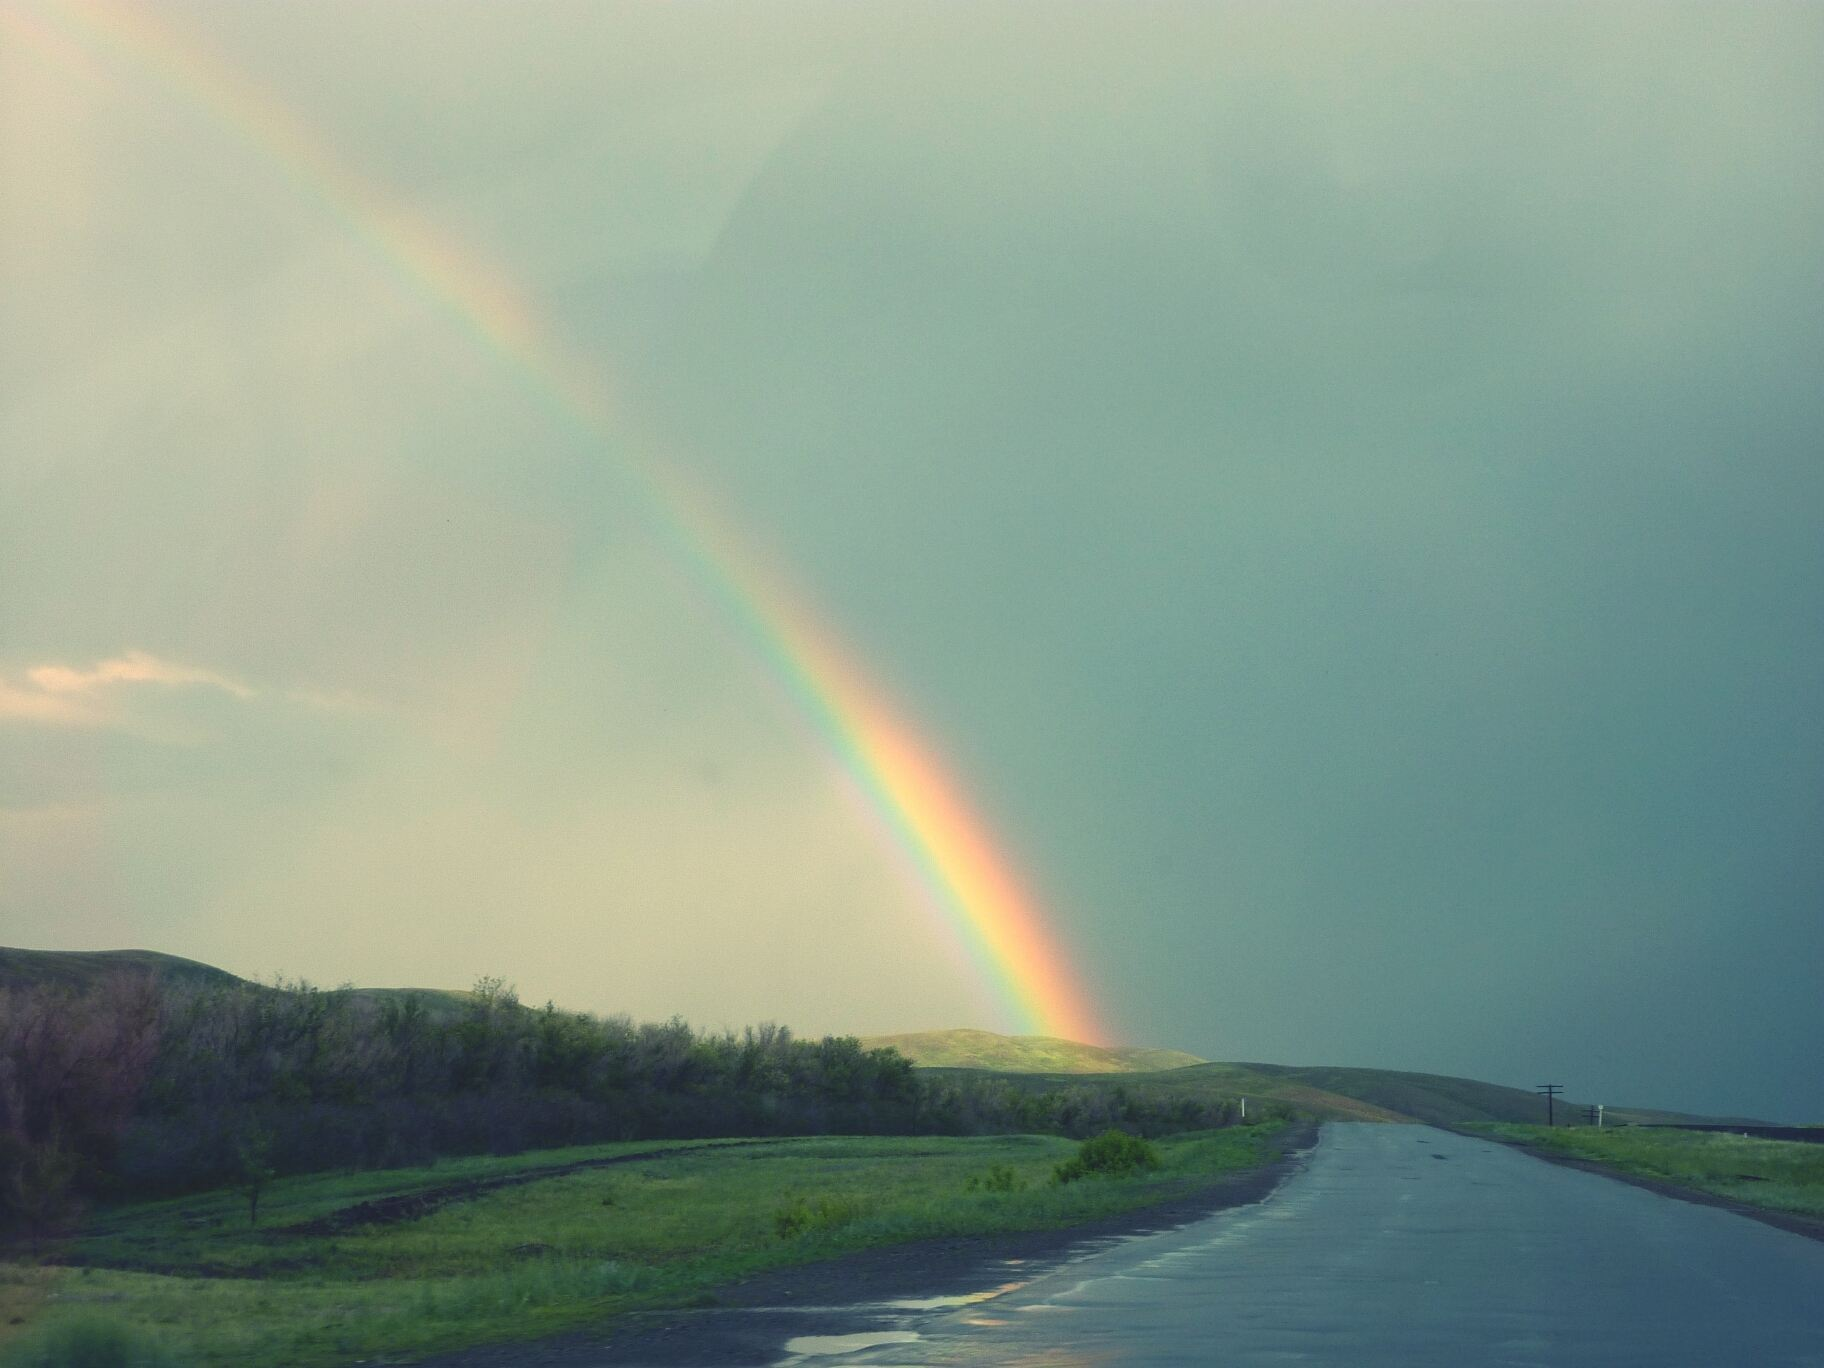 Scenic View Of Rainbow Over Road And Grassy Field